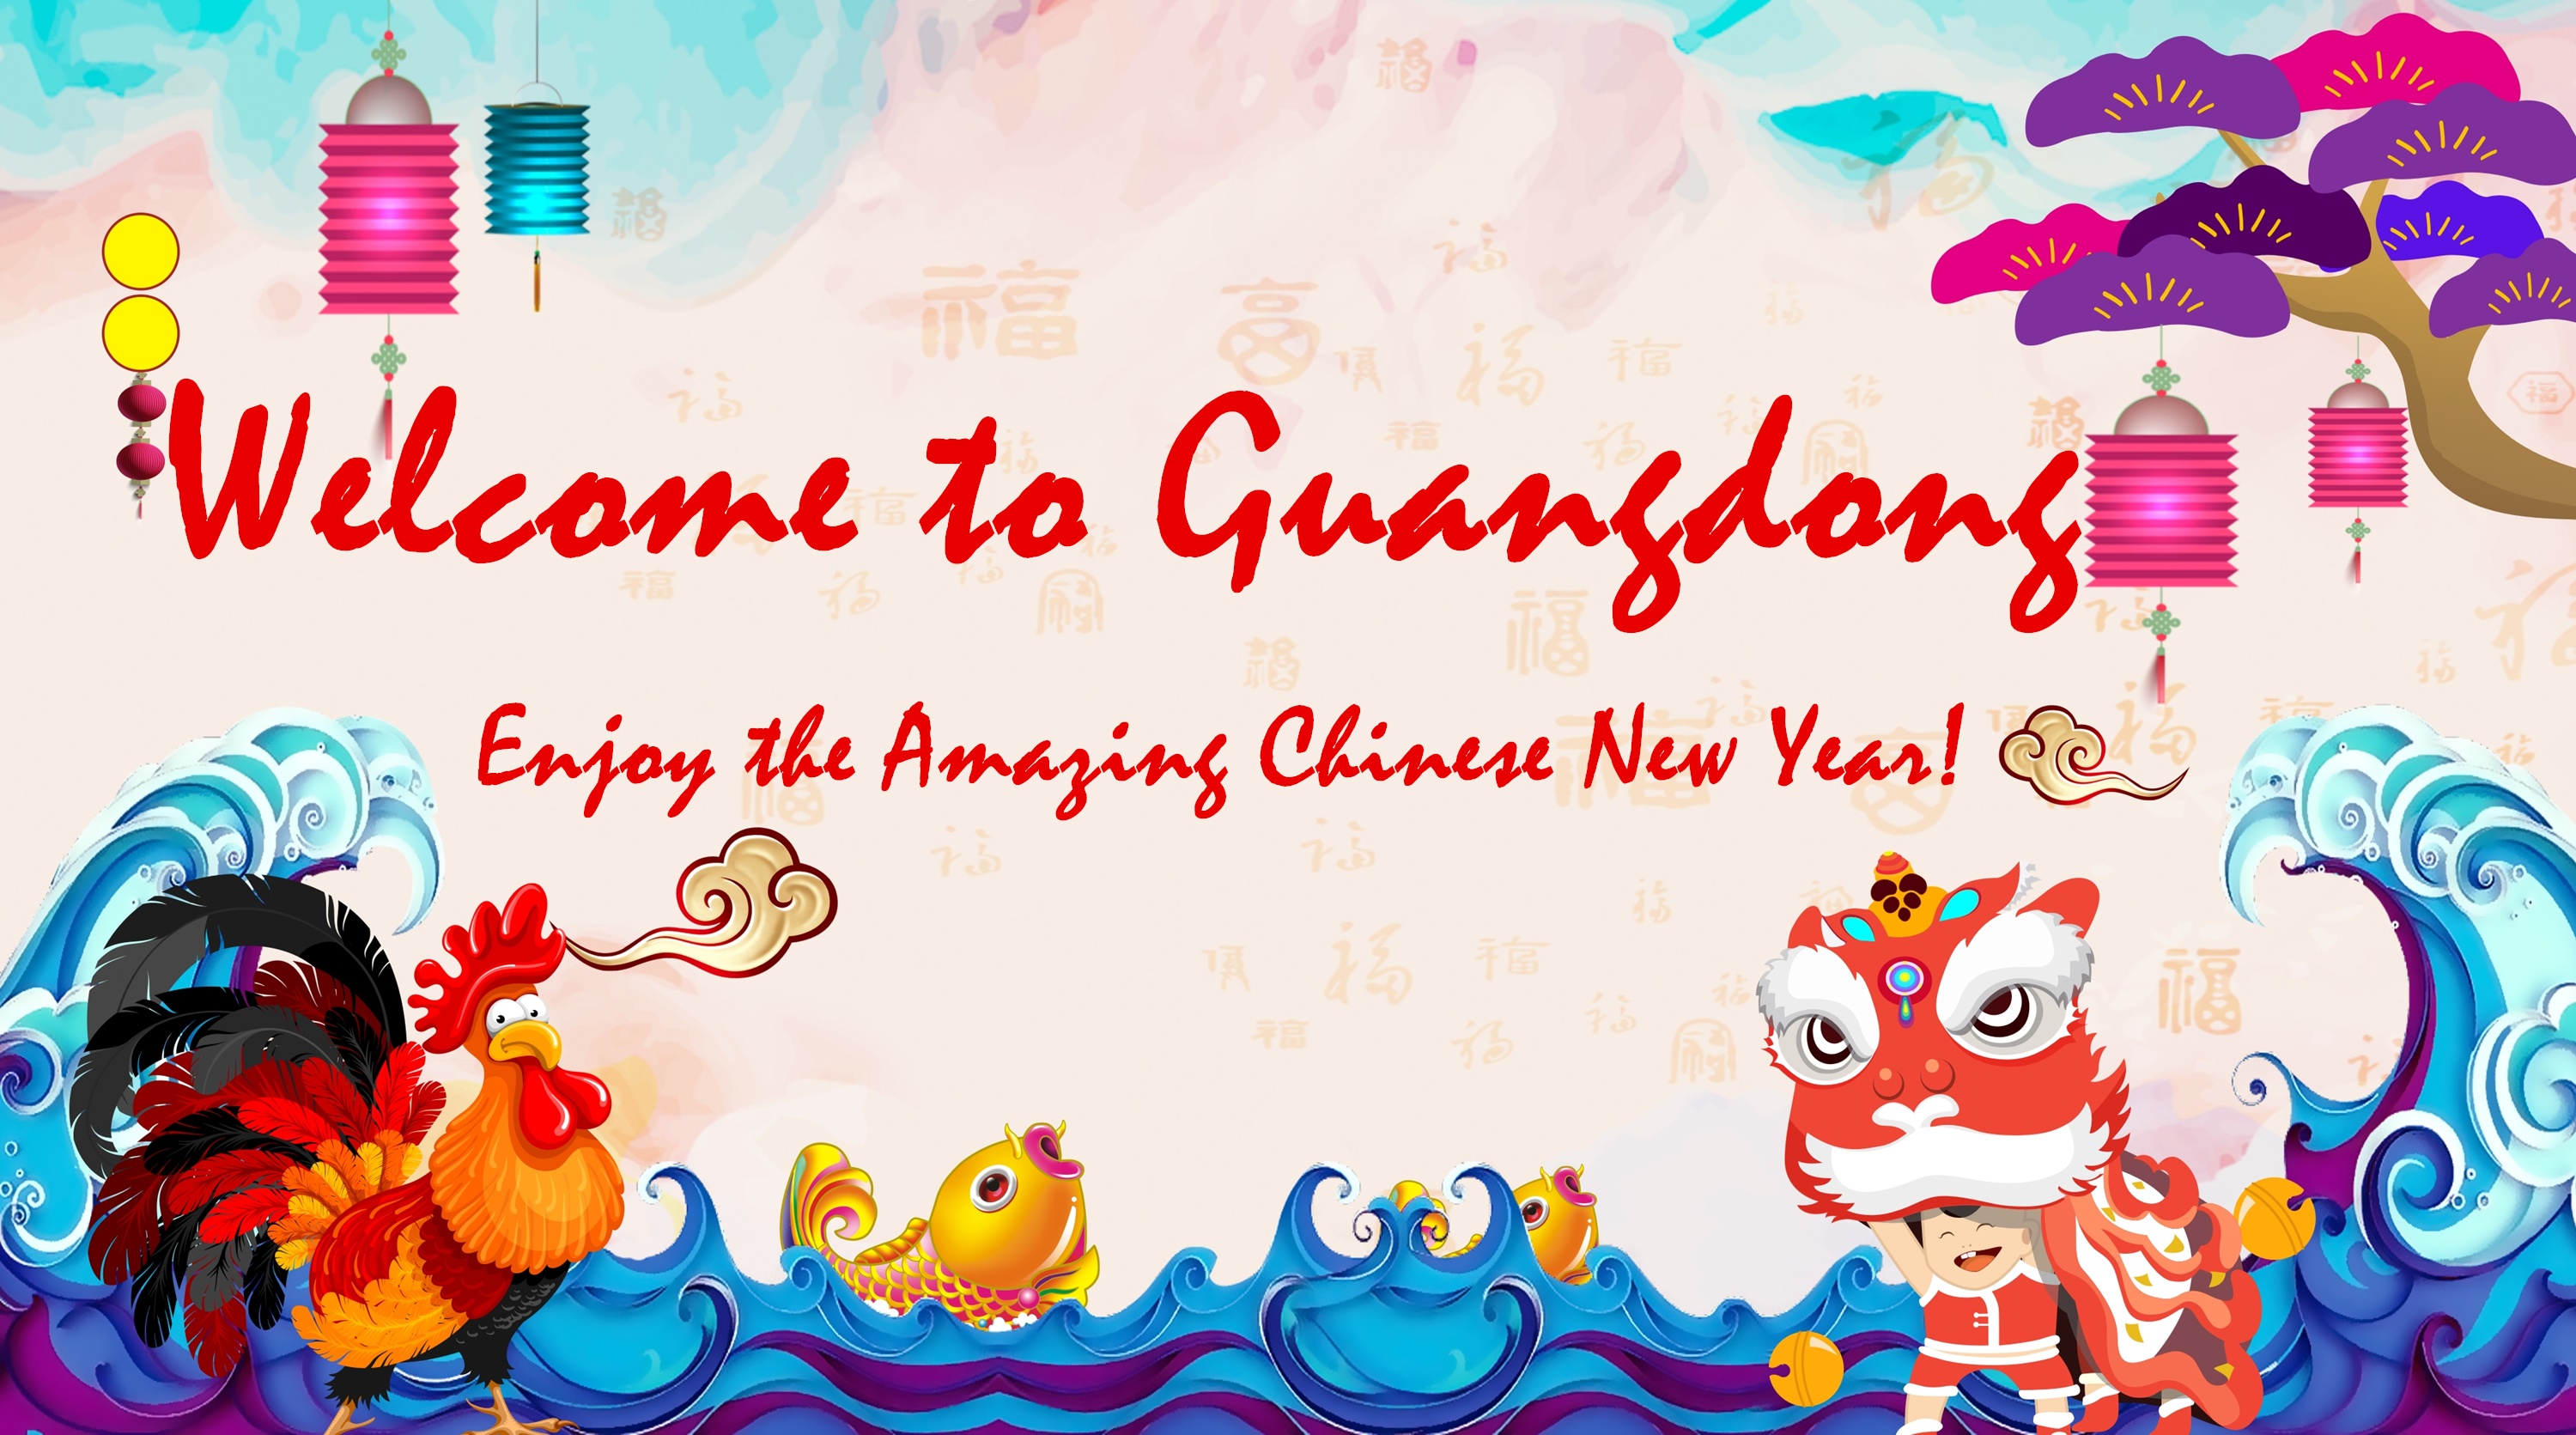 Make Wishes And Spread Love In Guangdong Business Wire